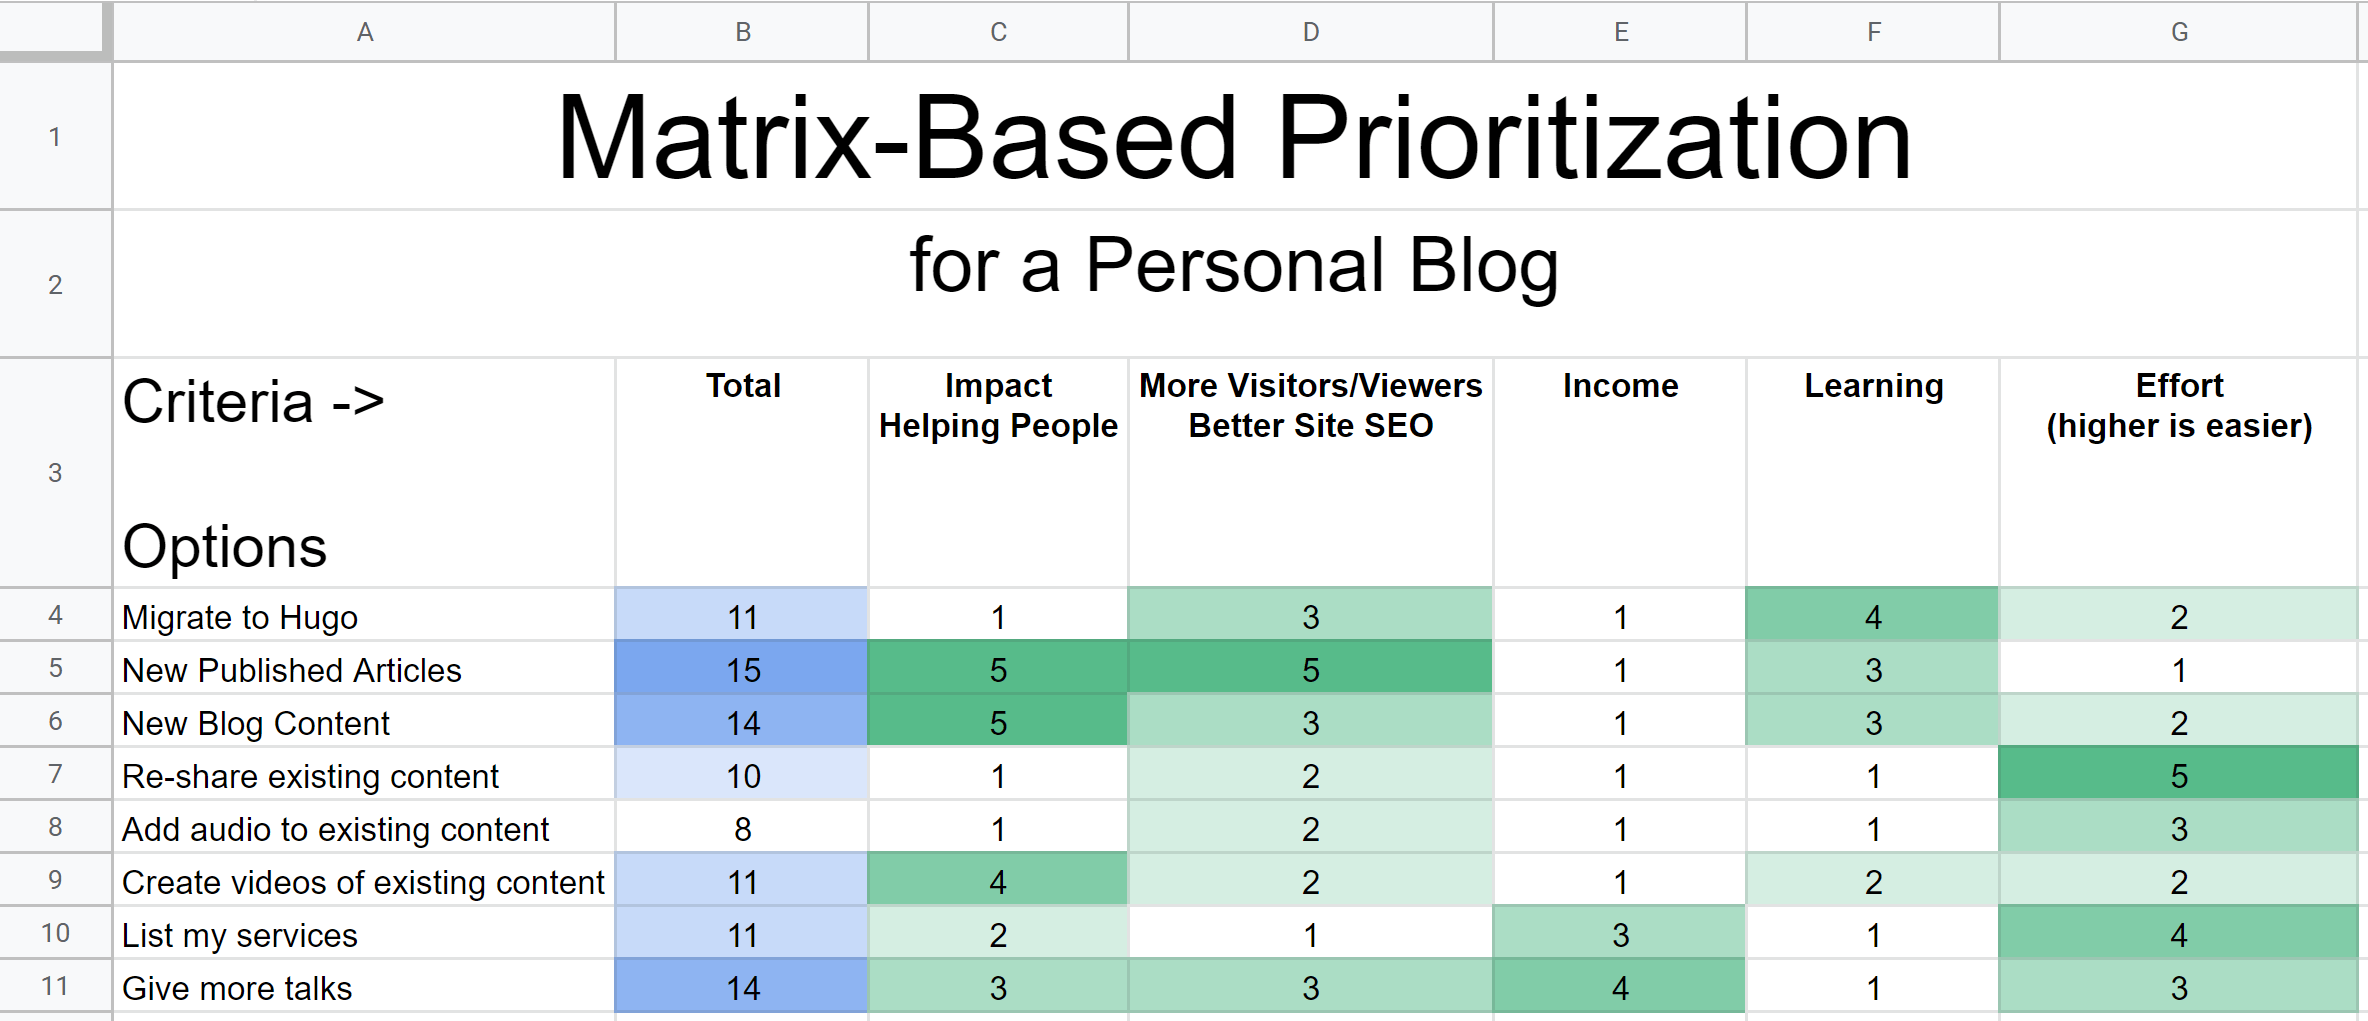 Matrix-Based Prioritization for Strong Organizational Alignment